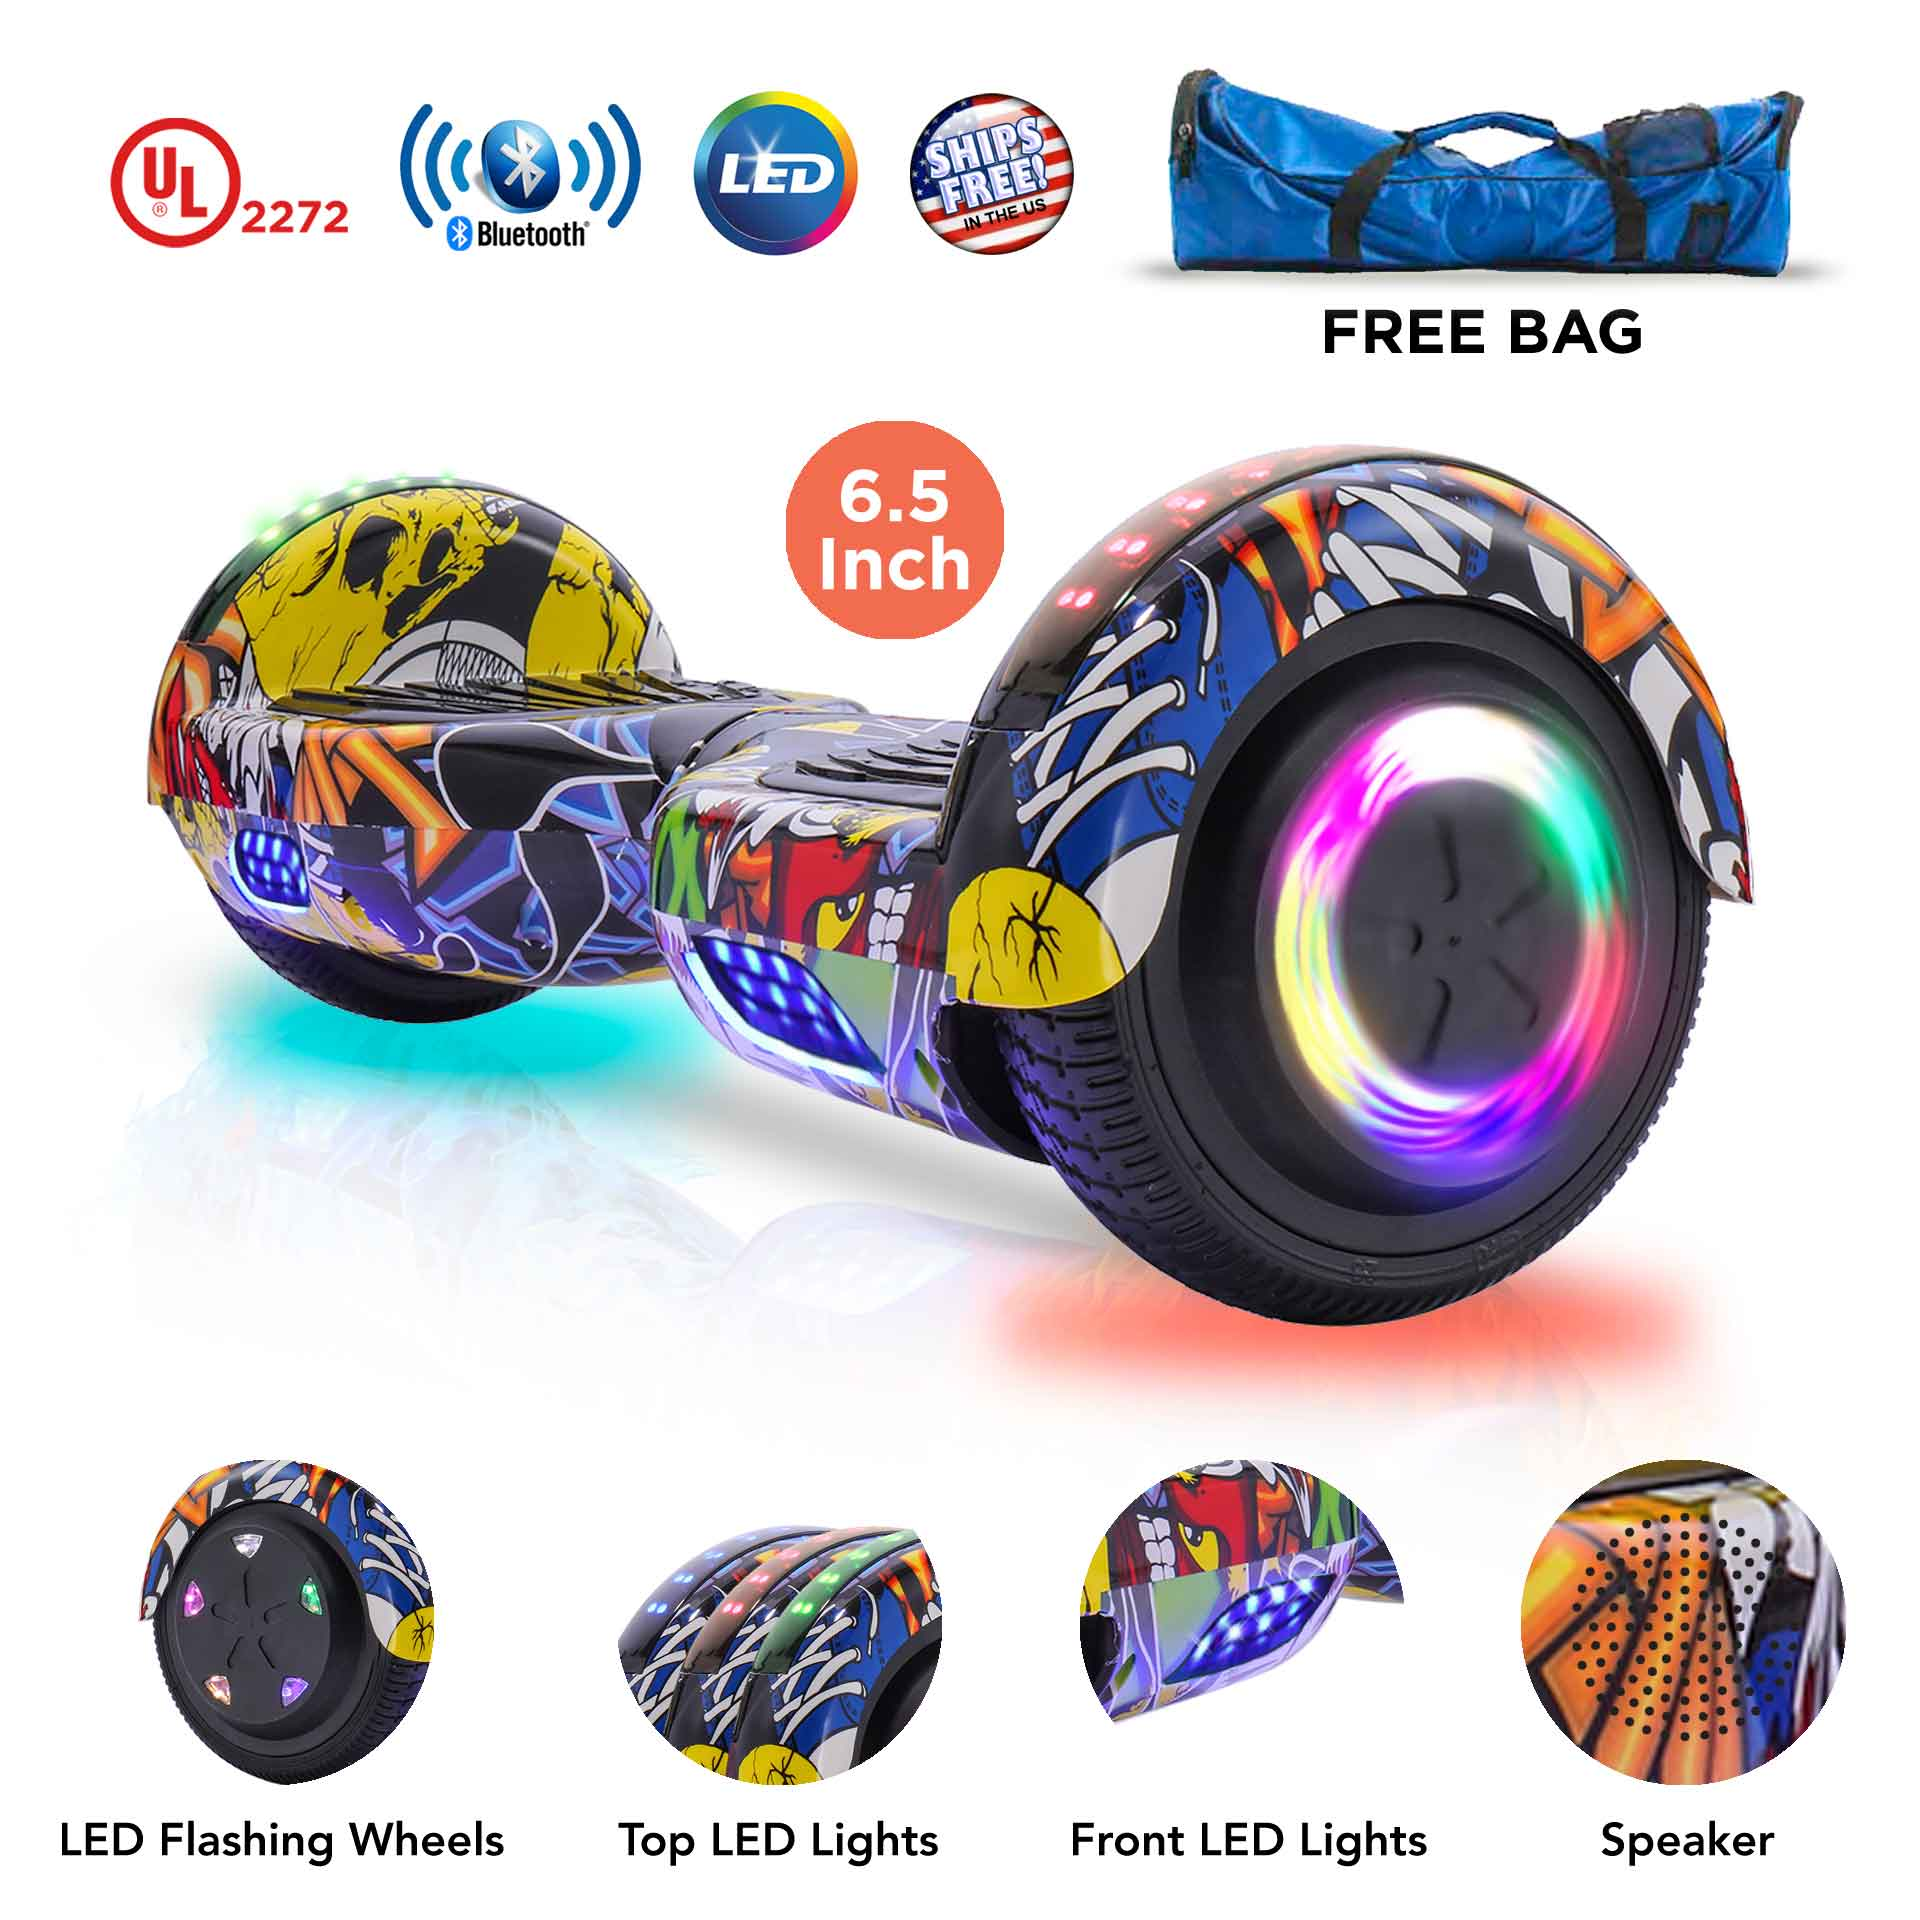 "EverGrow Graffiti Hoverboard with Bluetooth and LED Lights 6.5"" 2 Wheels Self Balancing Electric Scooter Board, FREE BAG (WHEELS-UC6.5-GRAFFITI)"